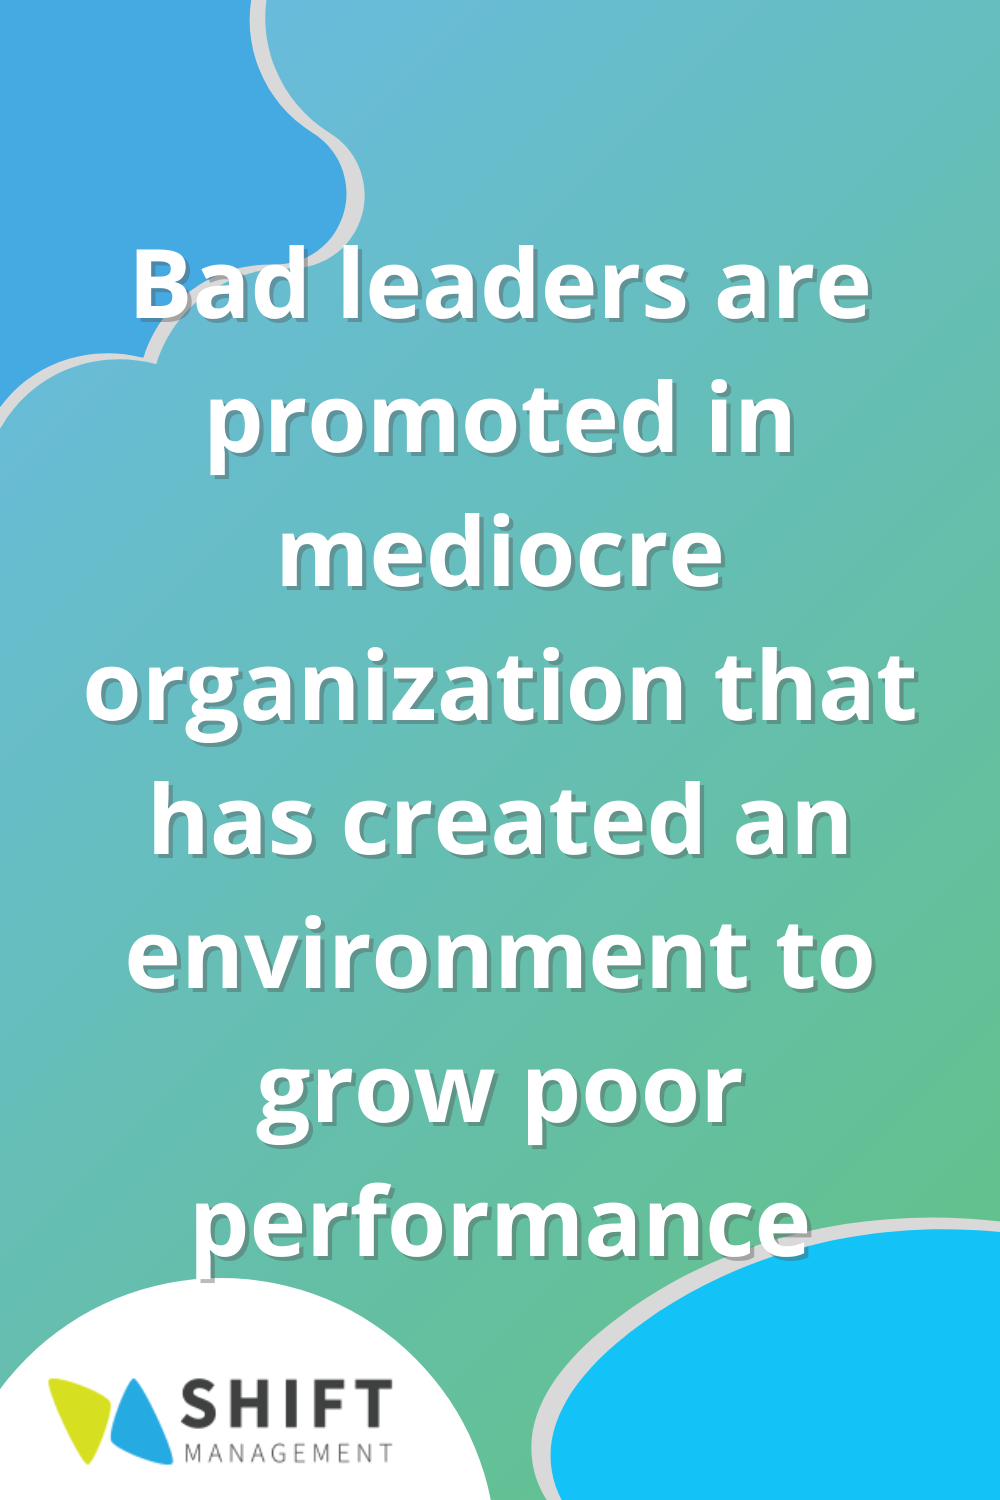 Bad leaders are promoted in mediocre organization that has created an environment to grow poor performance